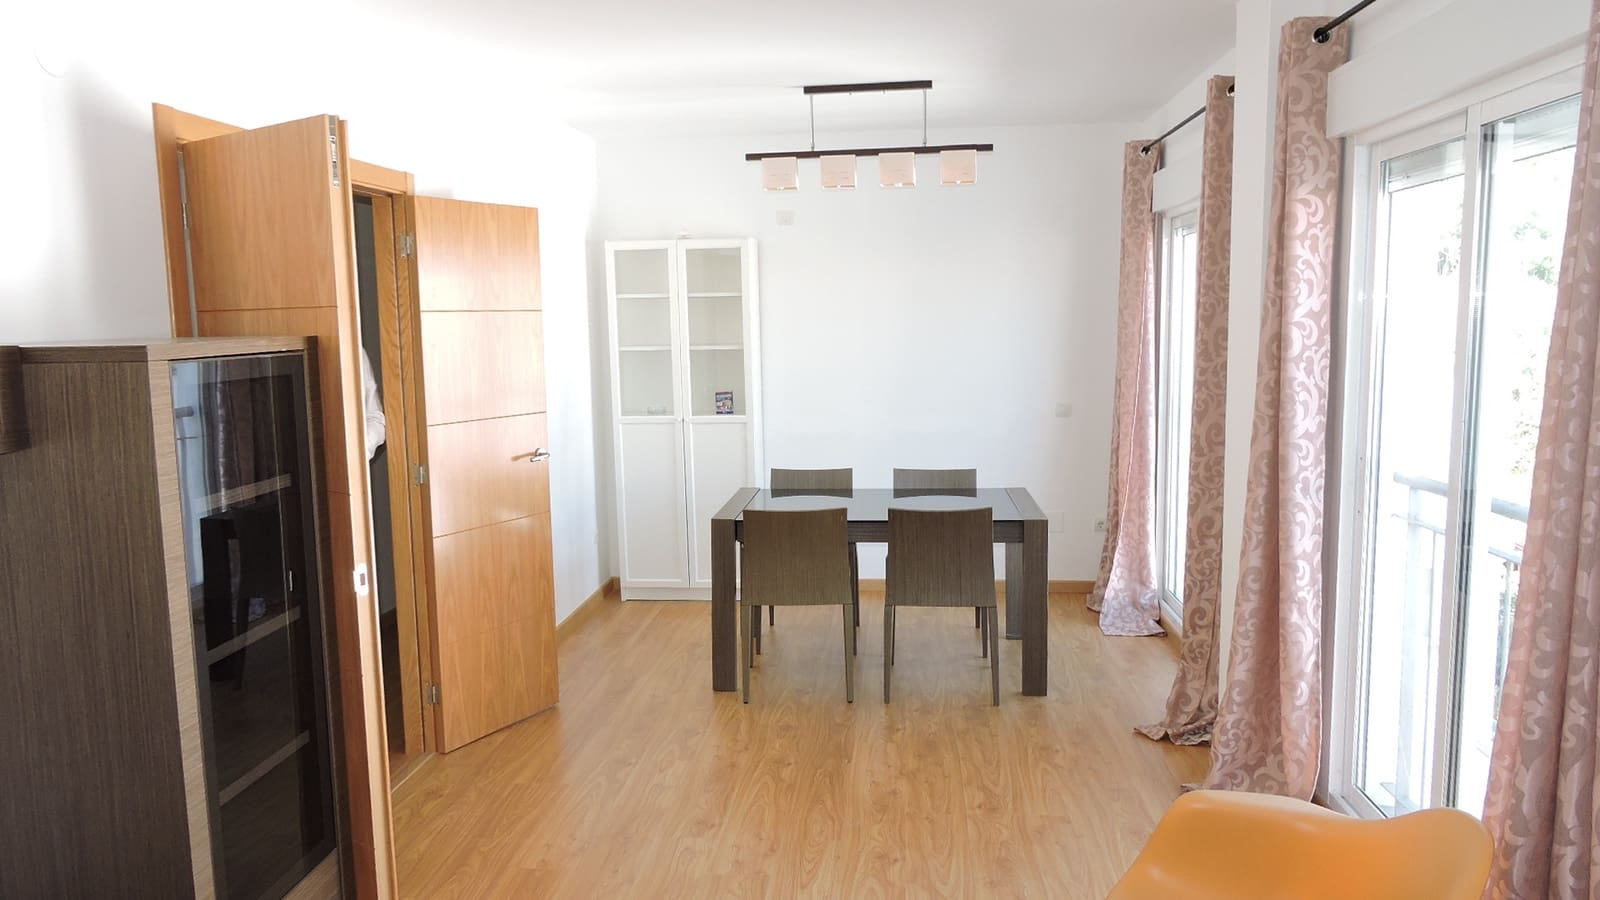 2 bedroom Apartment for sale in Canillas de Aceituno with garage - € 120,000 (Ref: 4107816)